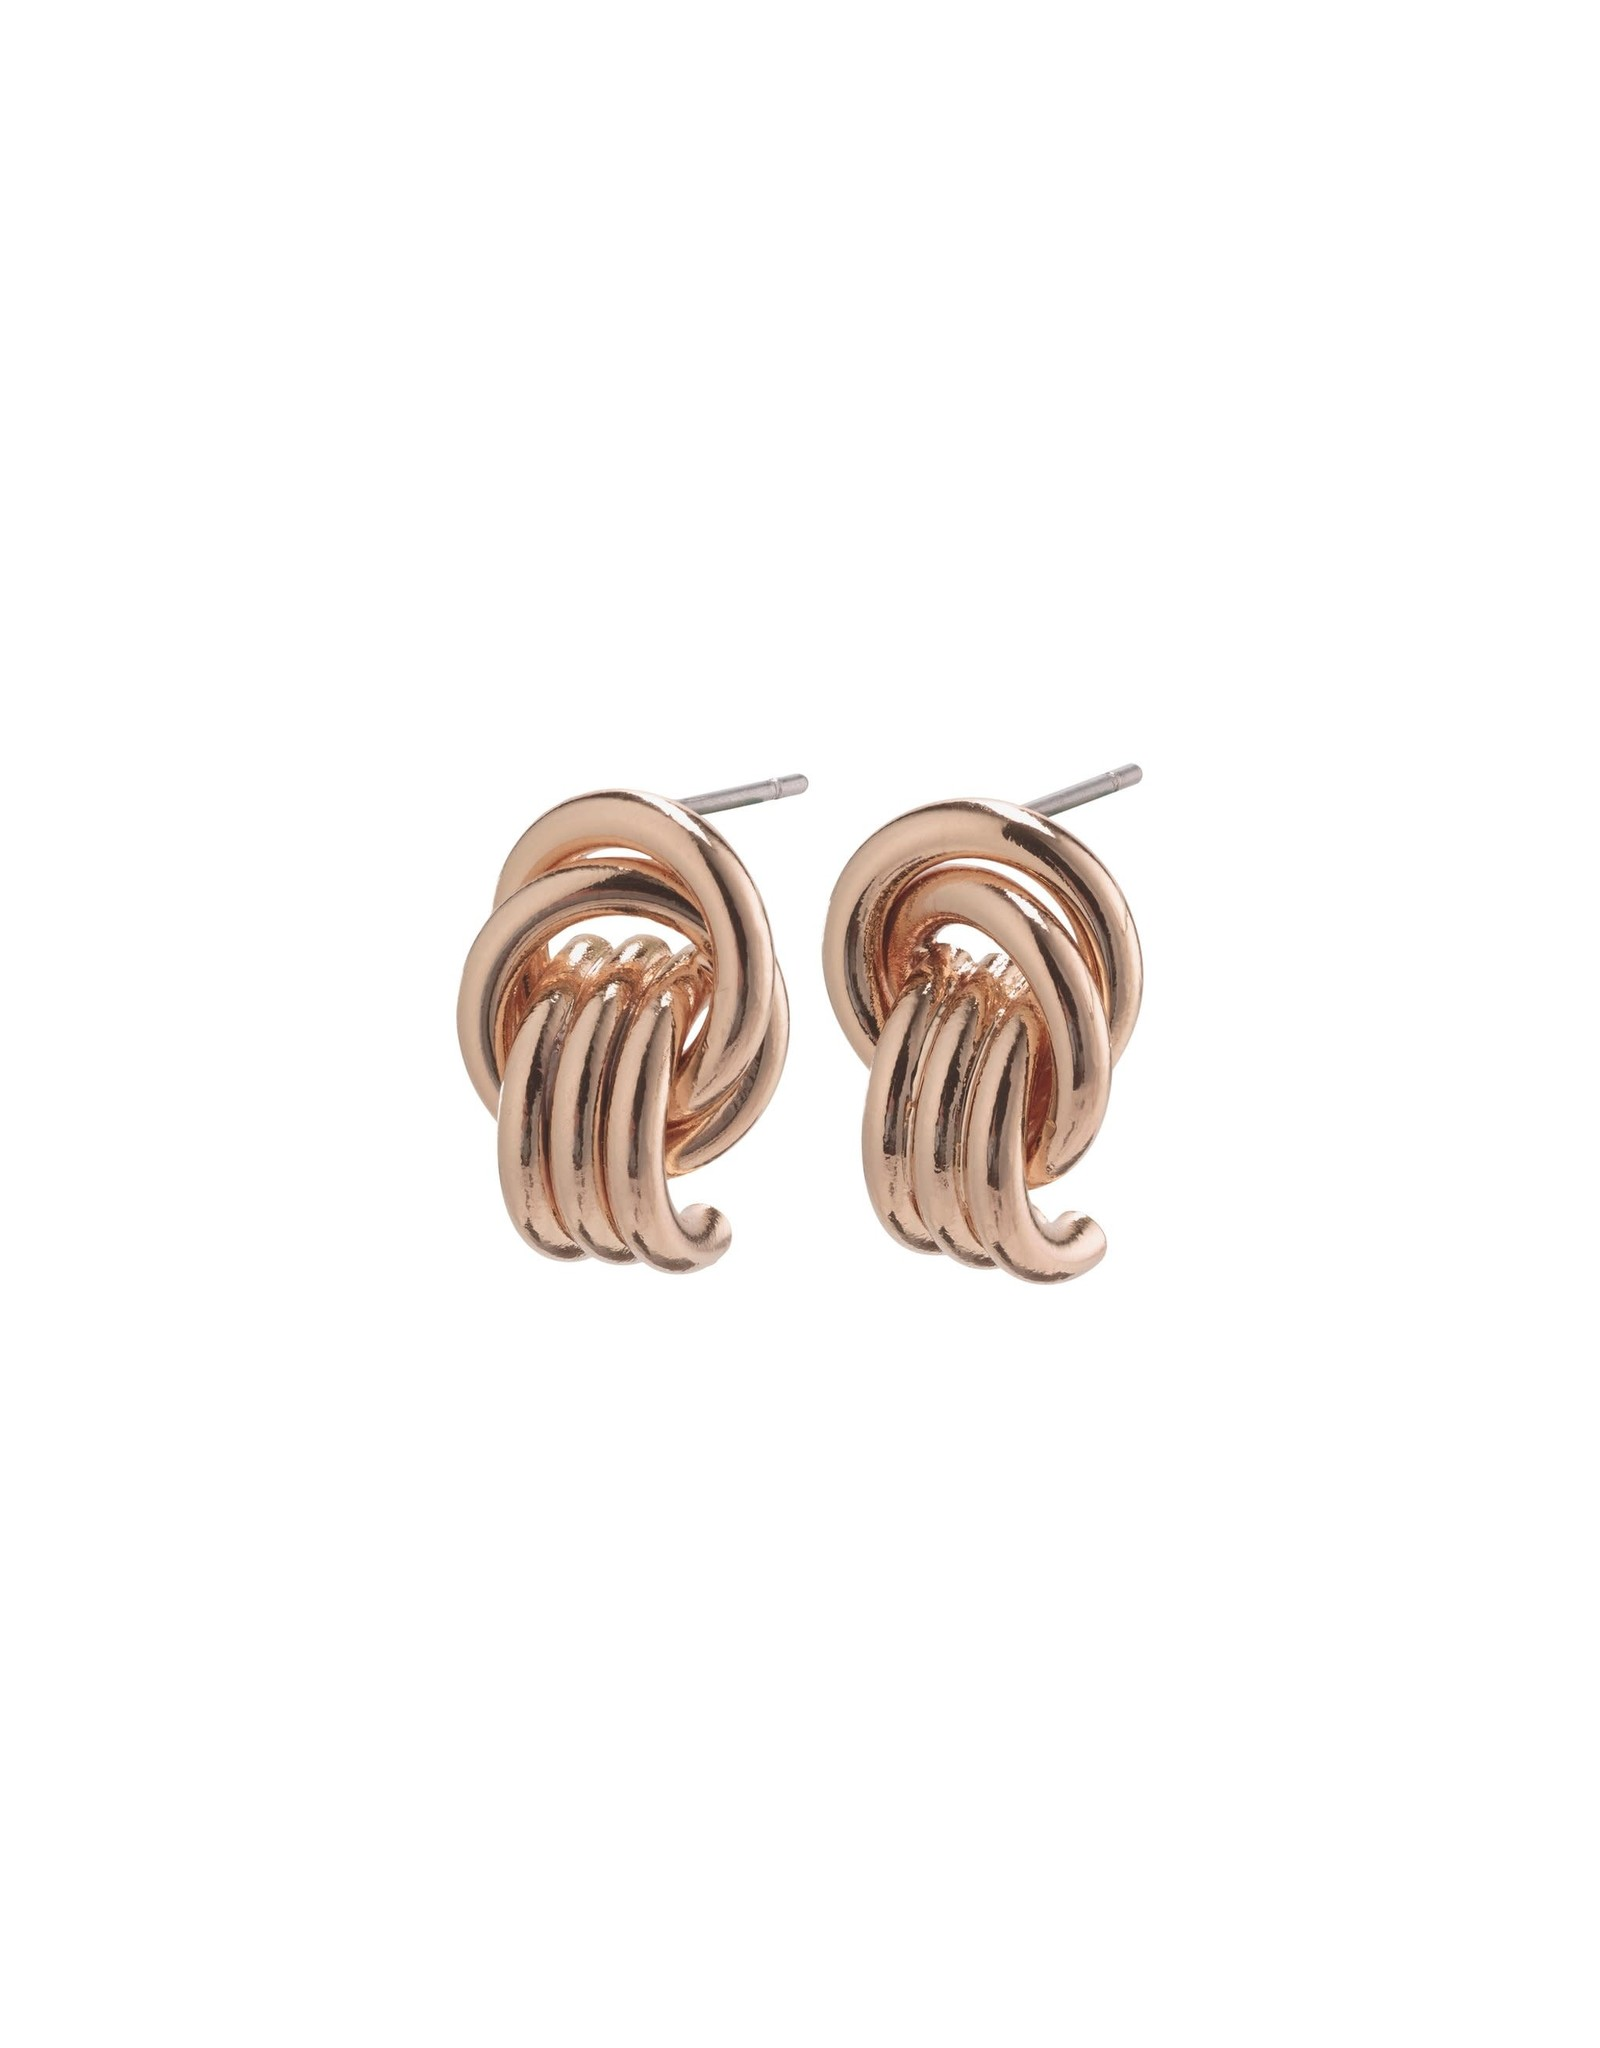 Pilgrim Pilgrim Doris Earrings Rose Gold Plated